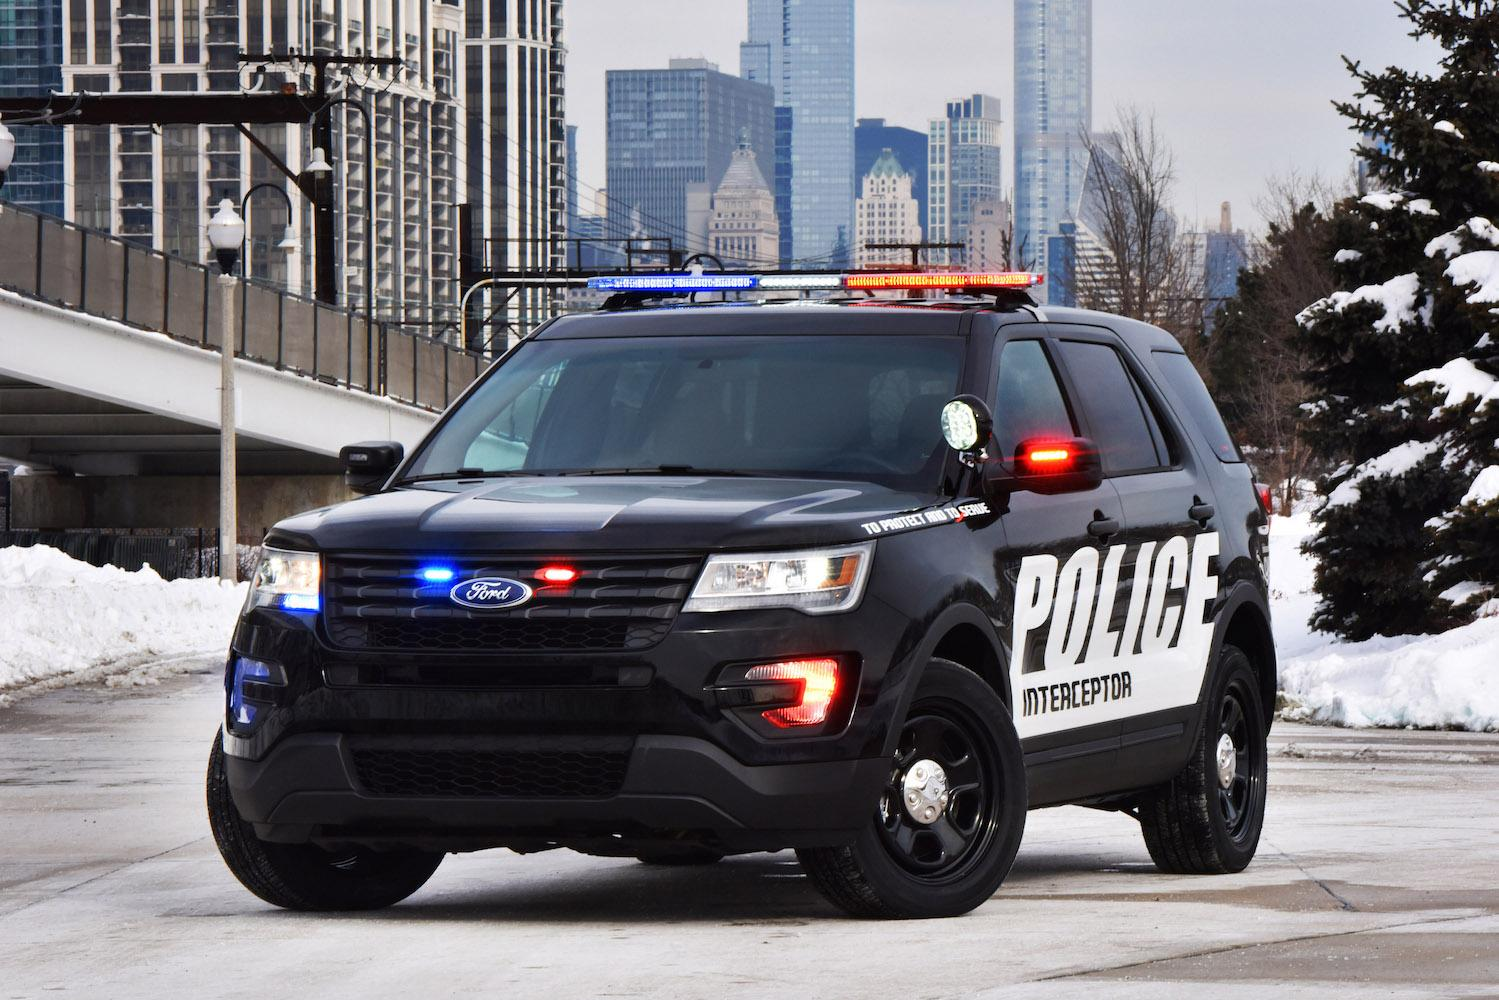 Ford Chevy And Dodge Square Off In Michigan Police Car